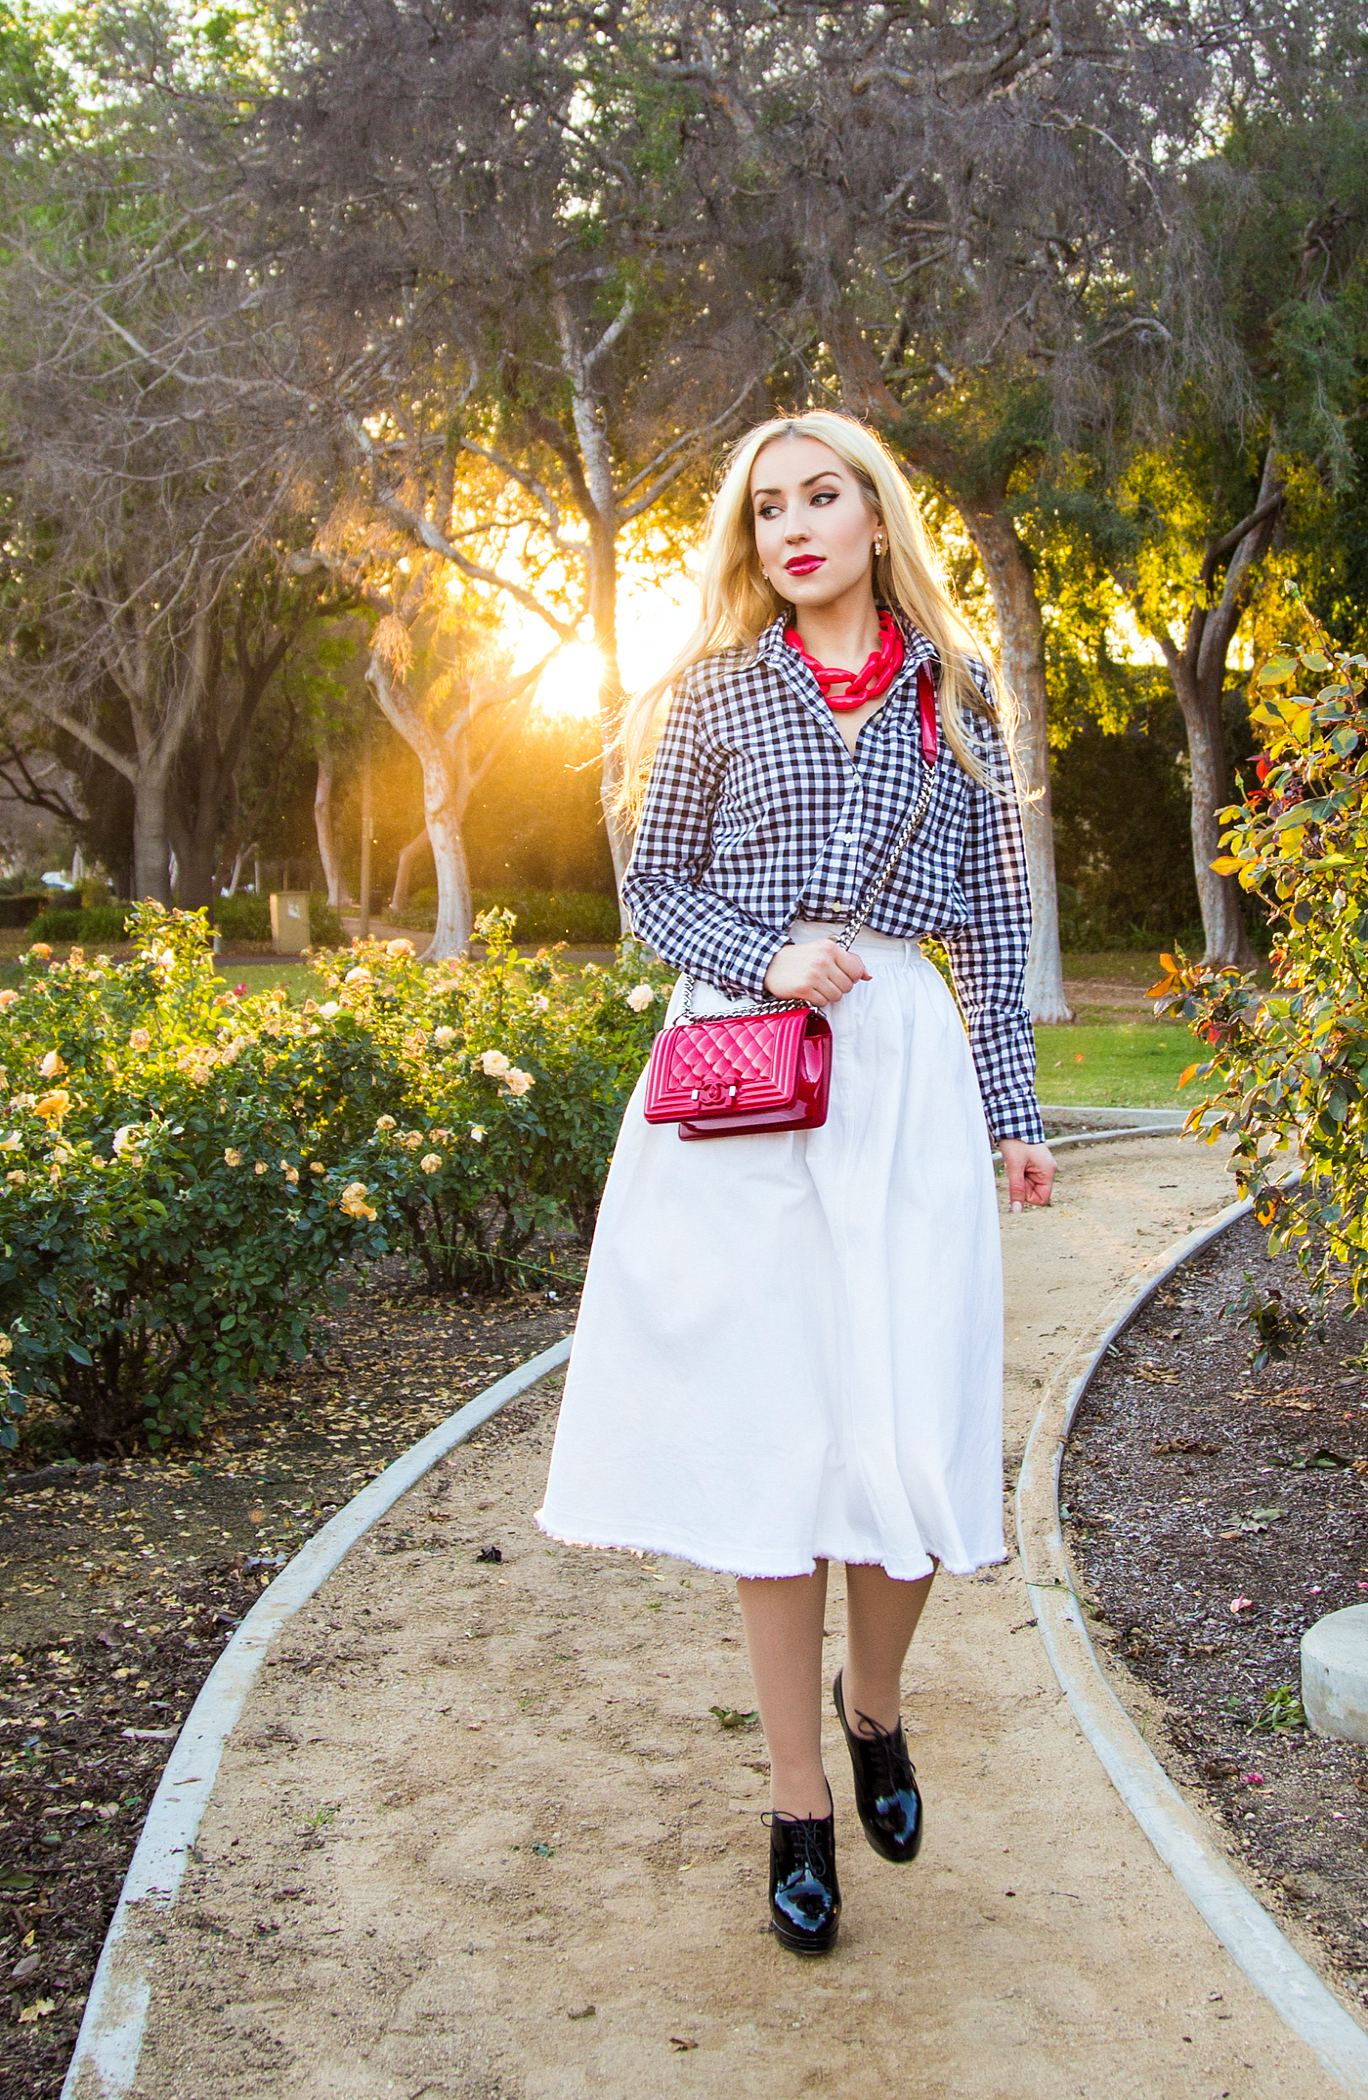 Checkered Shirt,Red And white Outfit,Midi White Skirt,Red Chanel Bag,Black and White with a pop of red outfit,Chanel Boy Outfit,Patent Chanel Boy in Red,Diana Broussard Nate,Chanel Boy,Diana Broussard Nate shocked pink,gingham,H&M Skirt,Gap shirt ,Dimmed